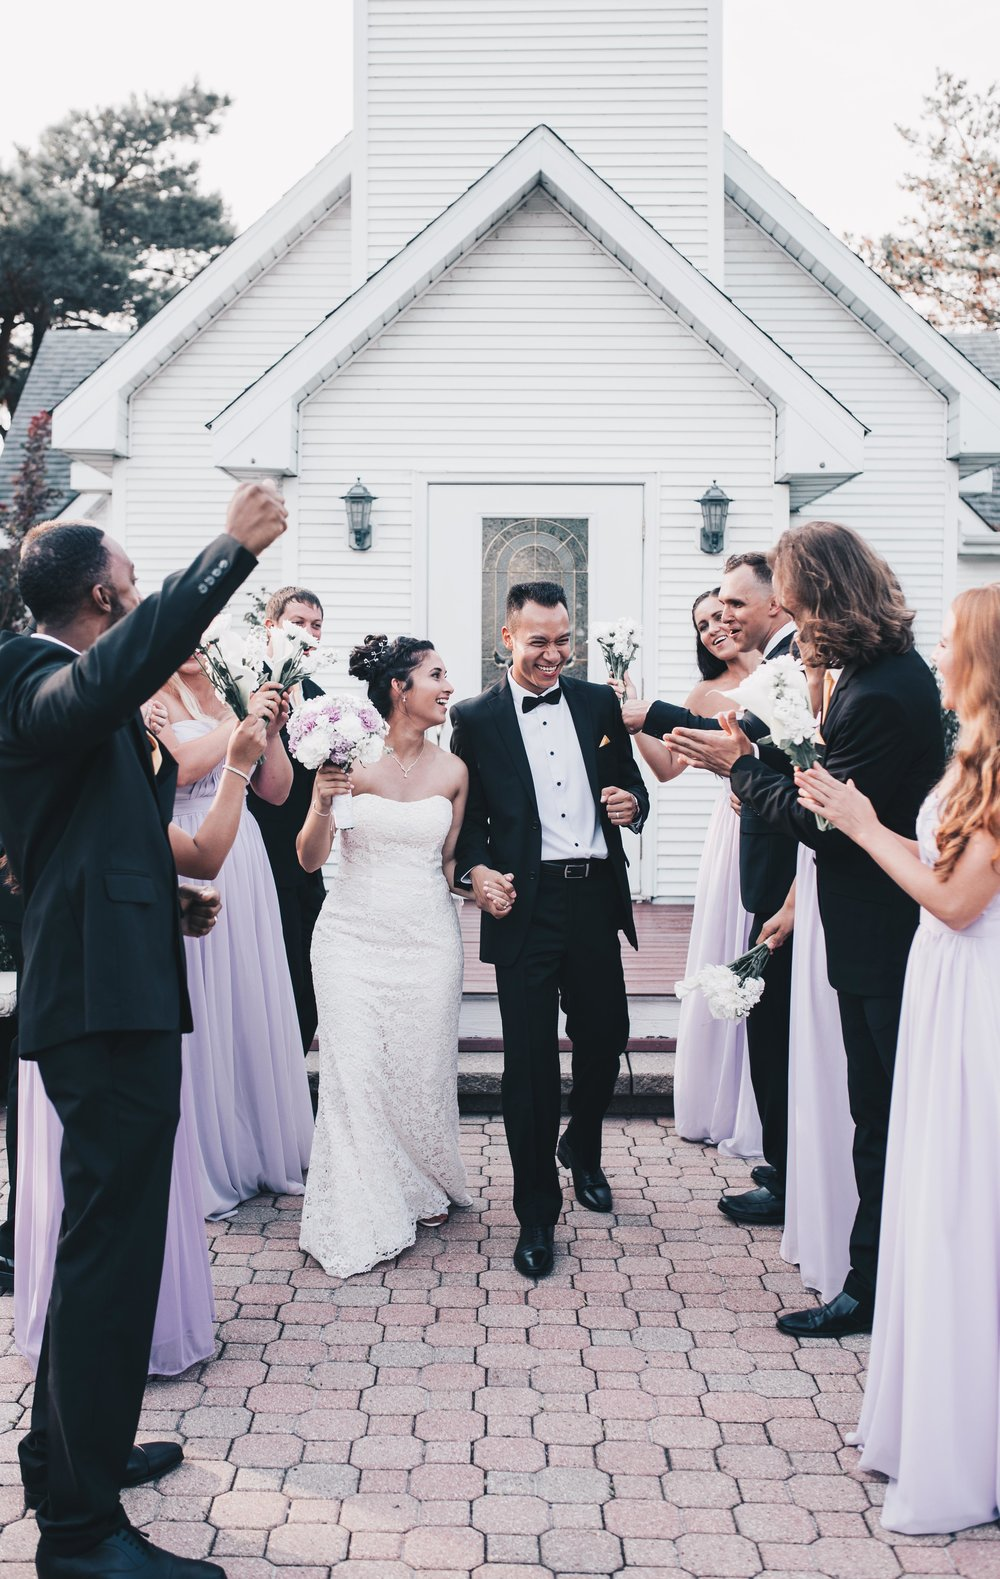 Chapel in the Pines Wedding, Chicago Wedding, Illinois Wedding, Bridal Party Photos